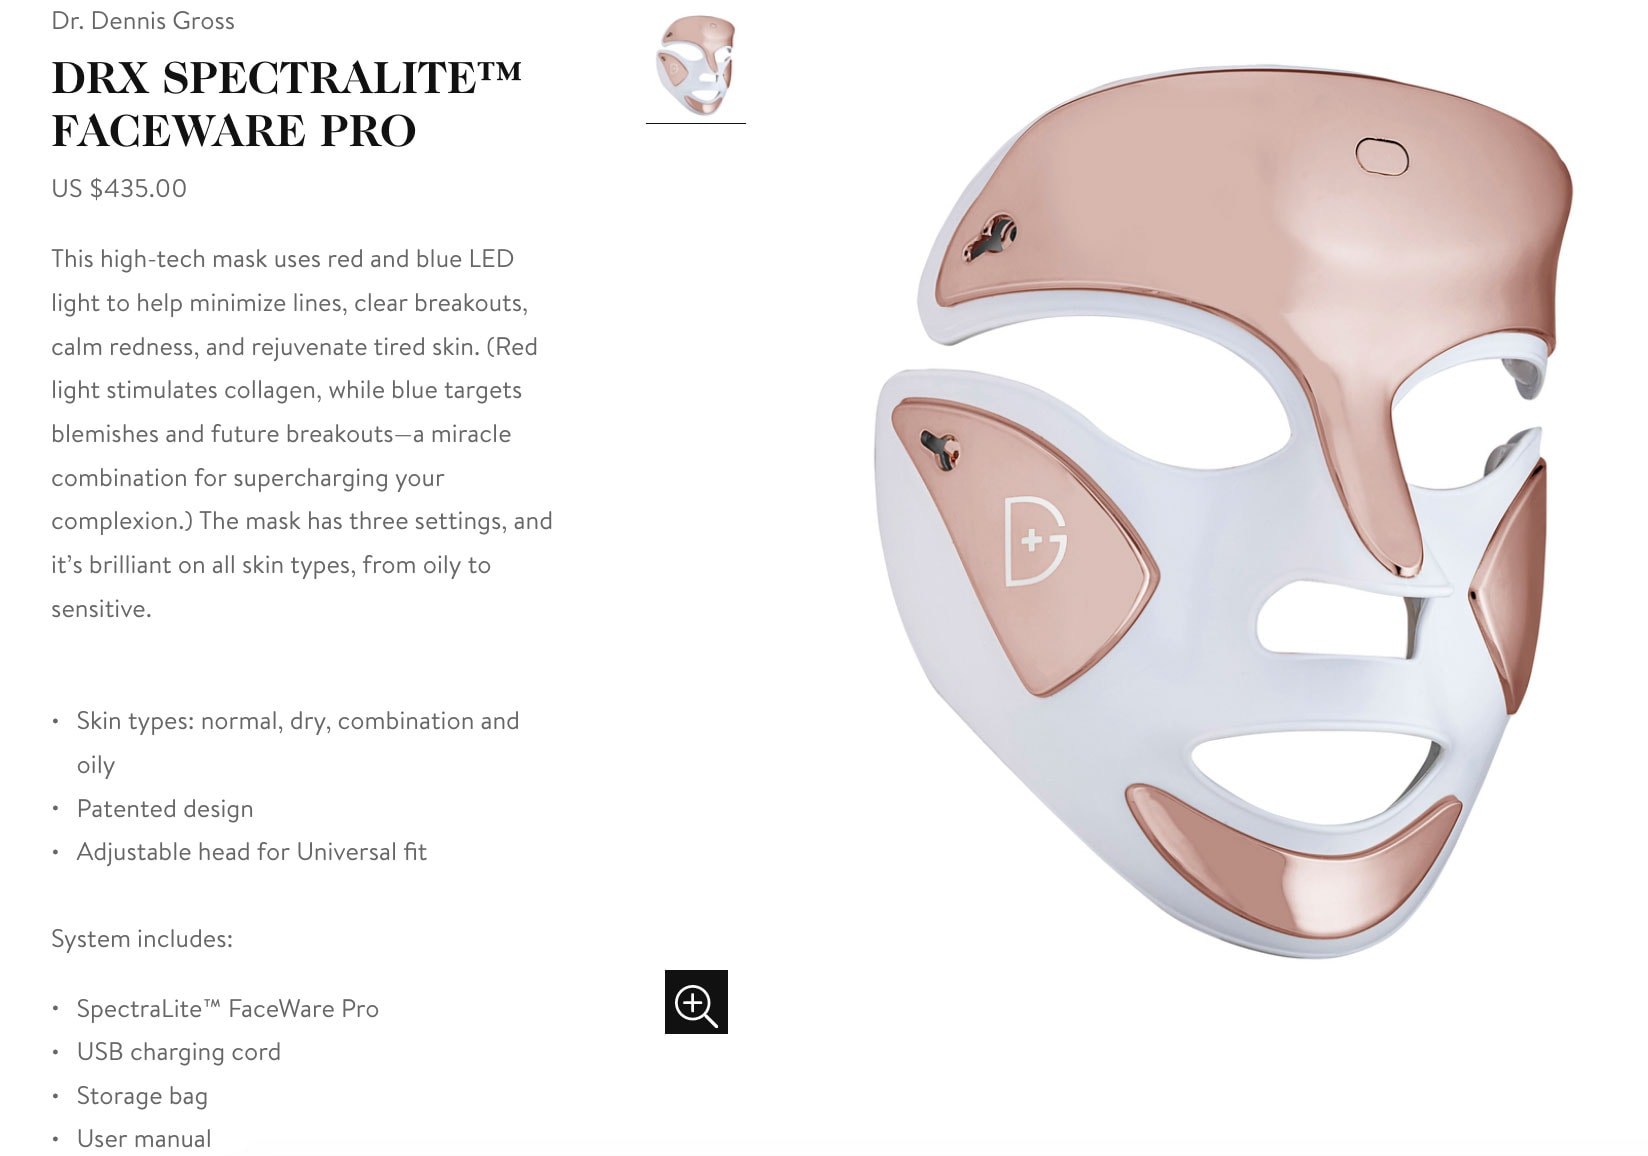 Goop Gift Guide - DRX Spectralite Faceware Pro